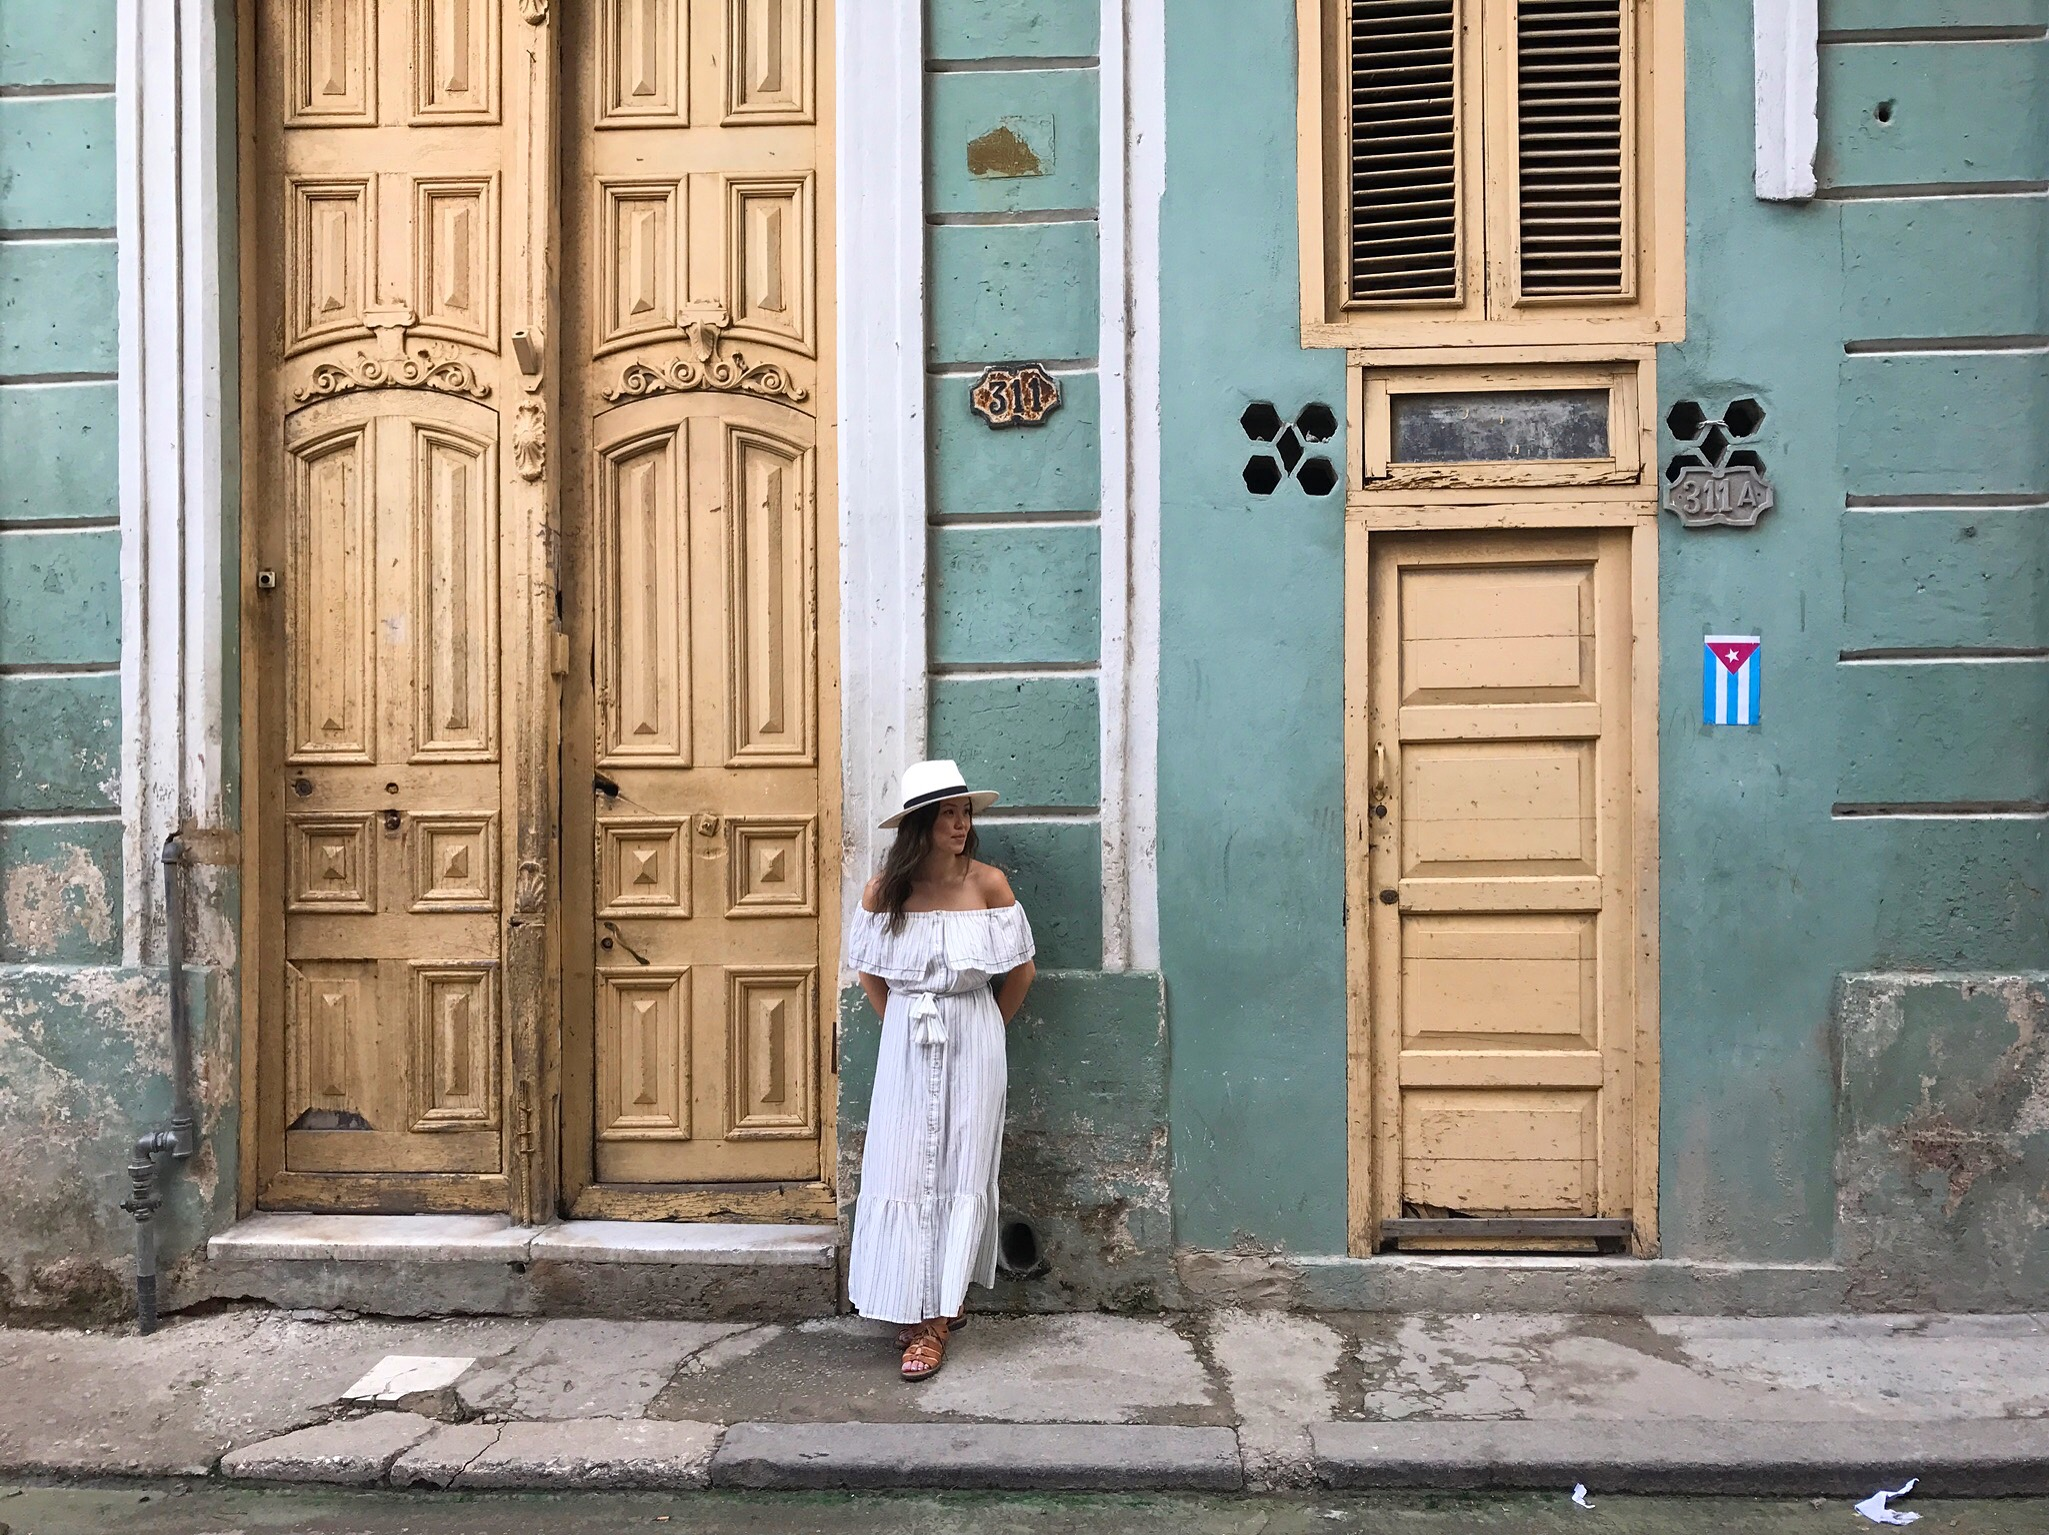 Old Havana, Cuba taken by my husband